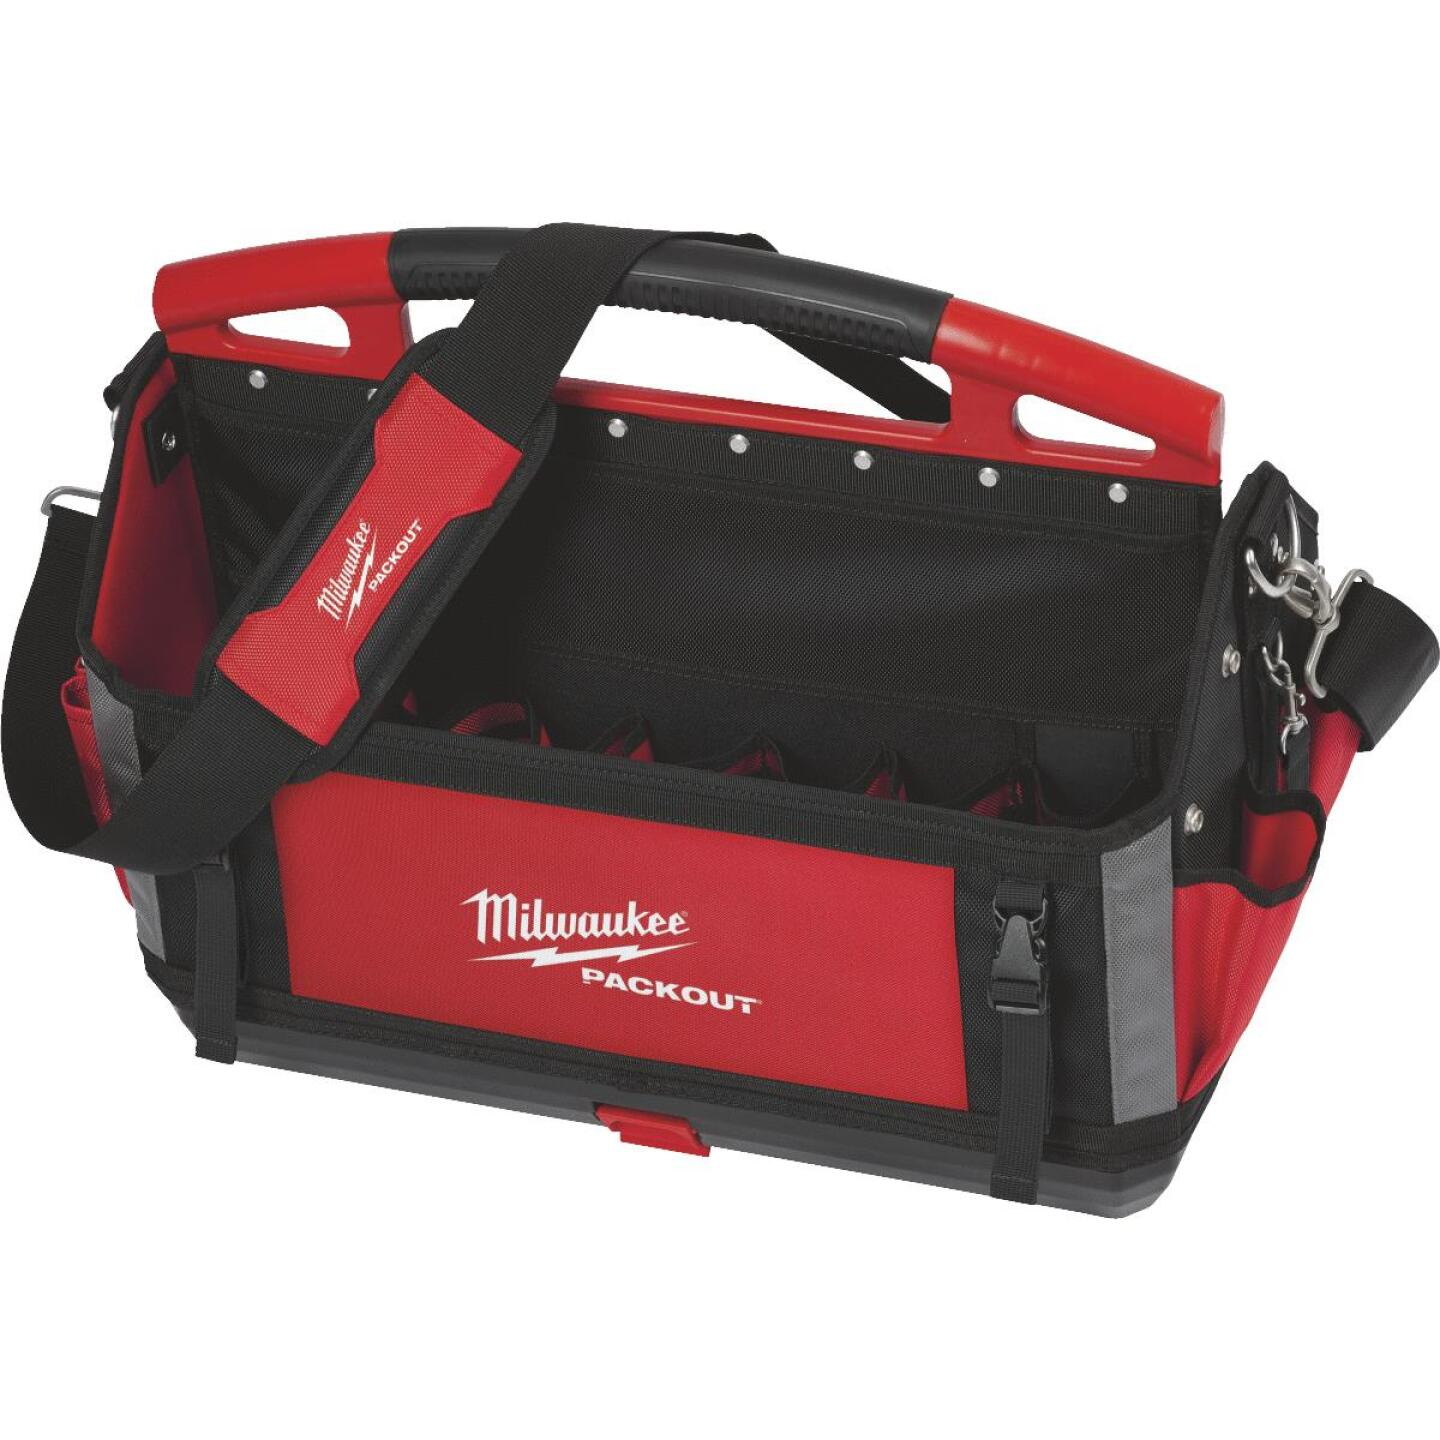 Milwaukee PACKOUT 32-Pocket 20 In. Tool Tote Image 1